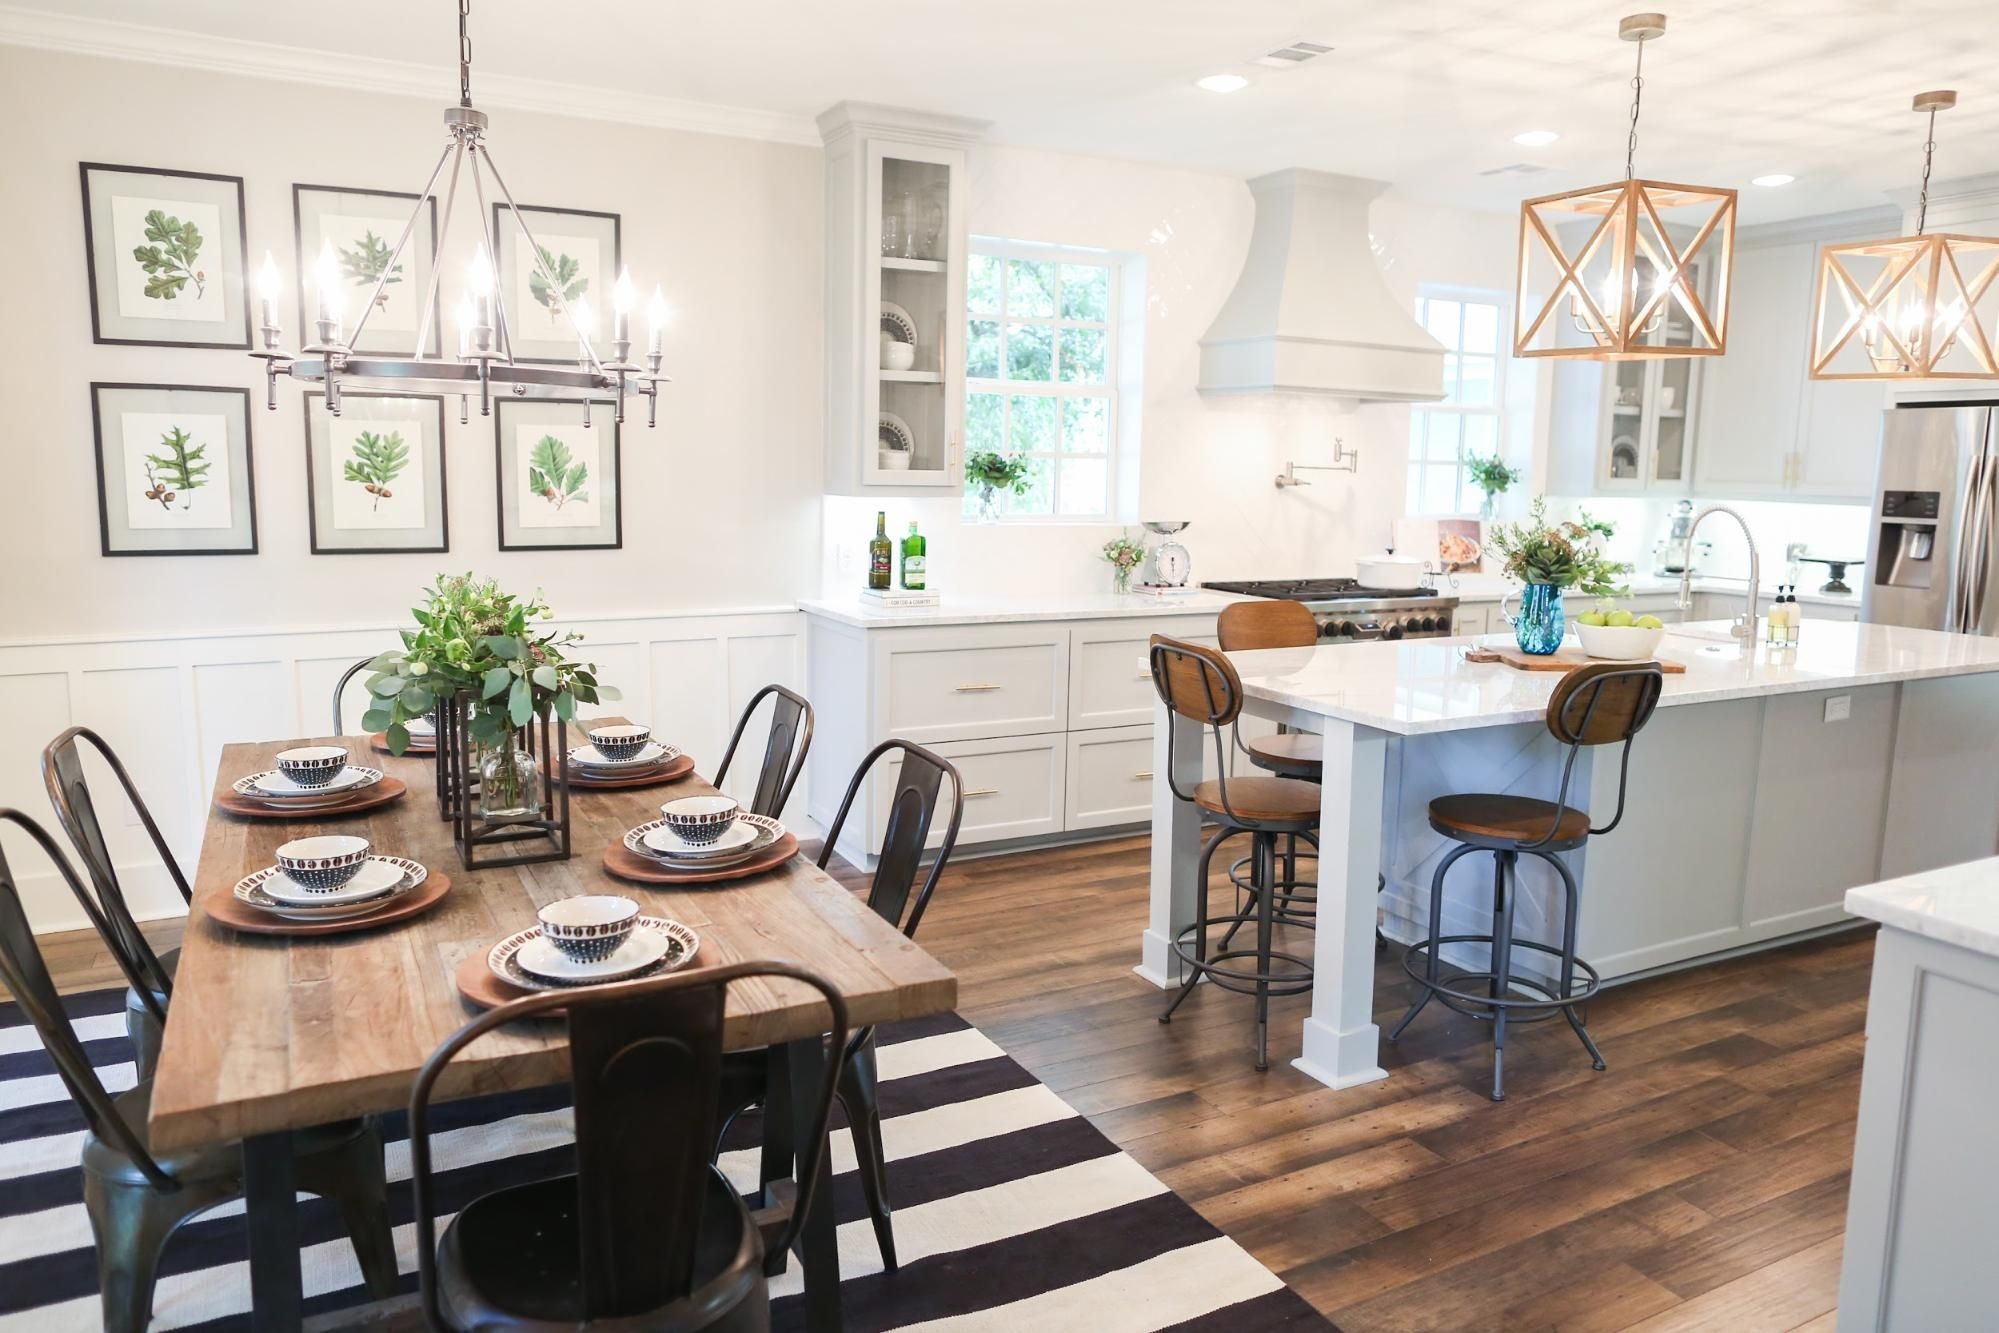 fixer upper in 2018 interior pinterest house kitchen and home